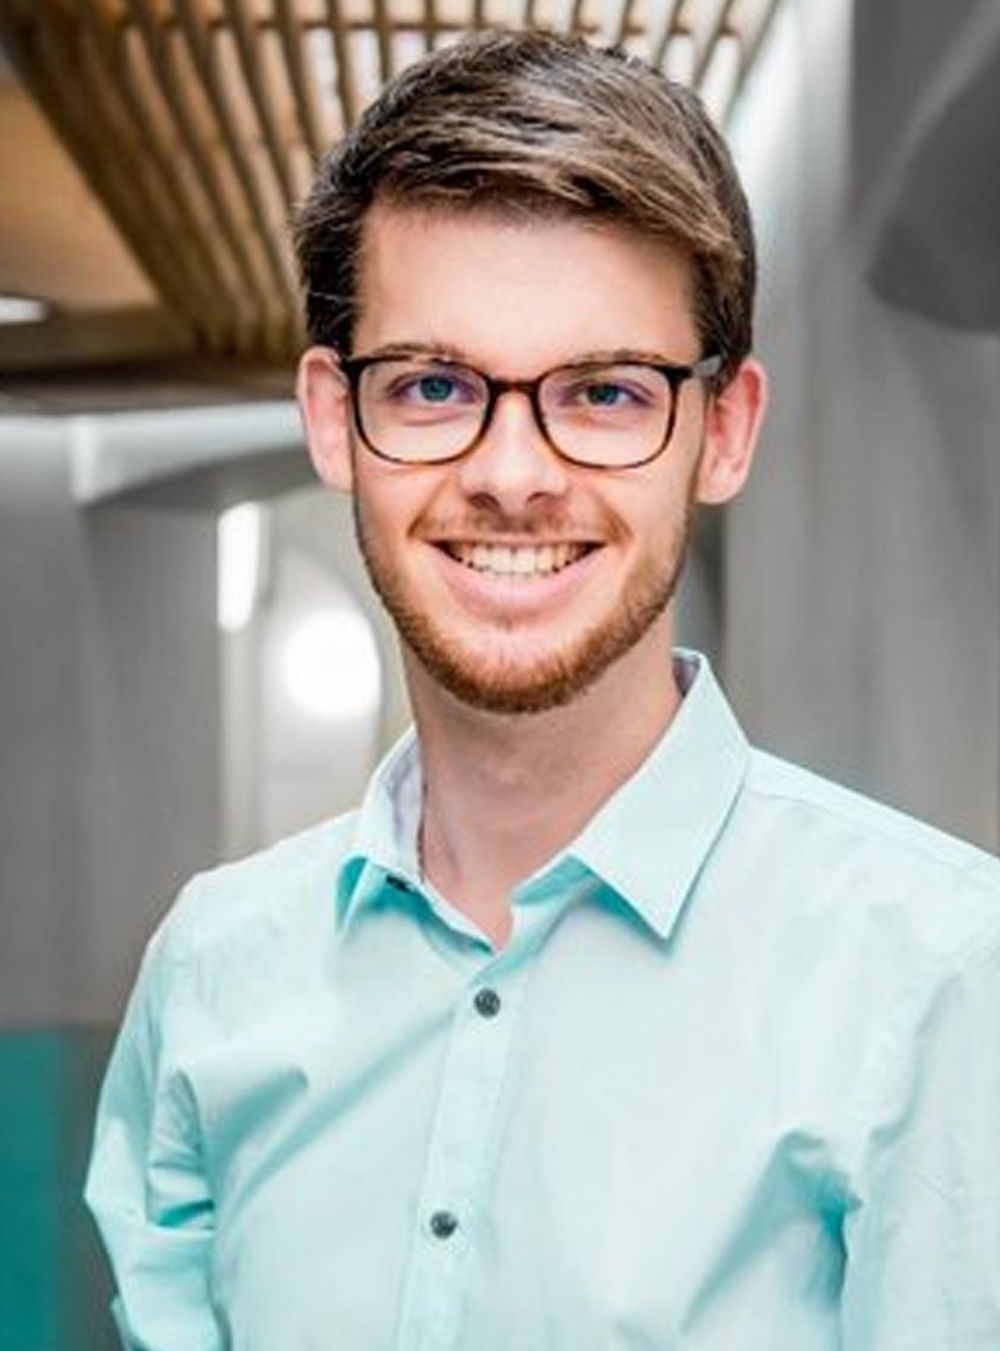 Martijn Peters, SciComm Expert - Martijn Peters wants to change the way we talk about science! As a scientist turned science communication expert, Martijn uses his social platforms to educate, inform, and curate scientific information that's fun, engaging, and entertaining.